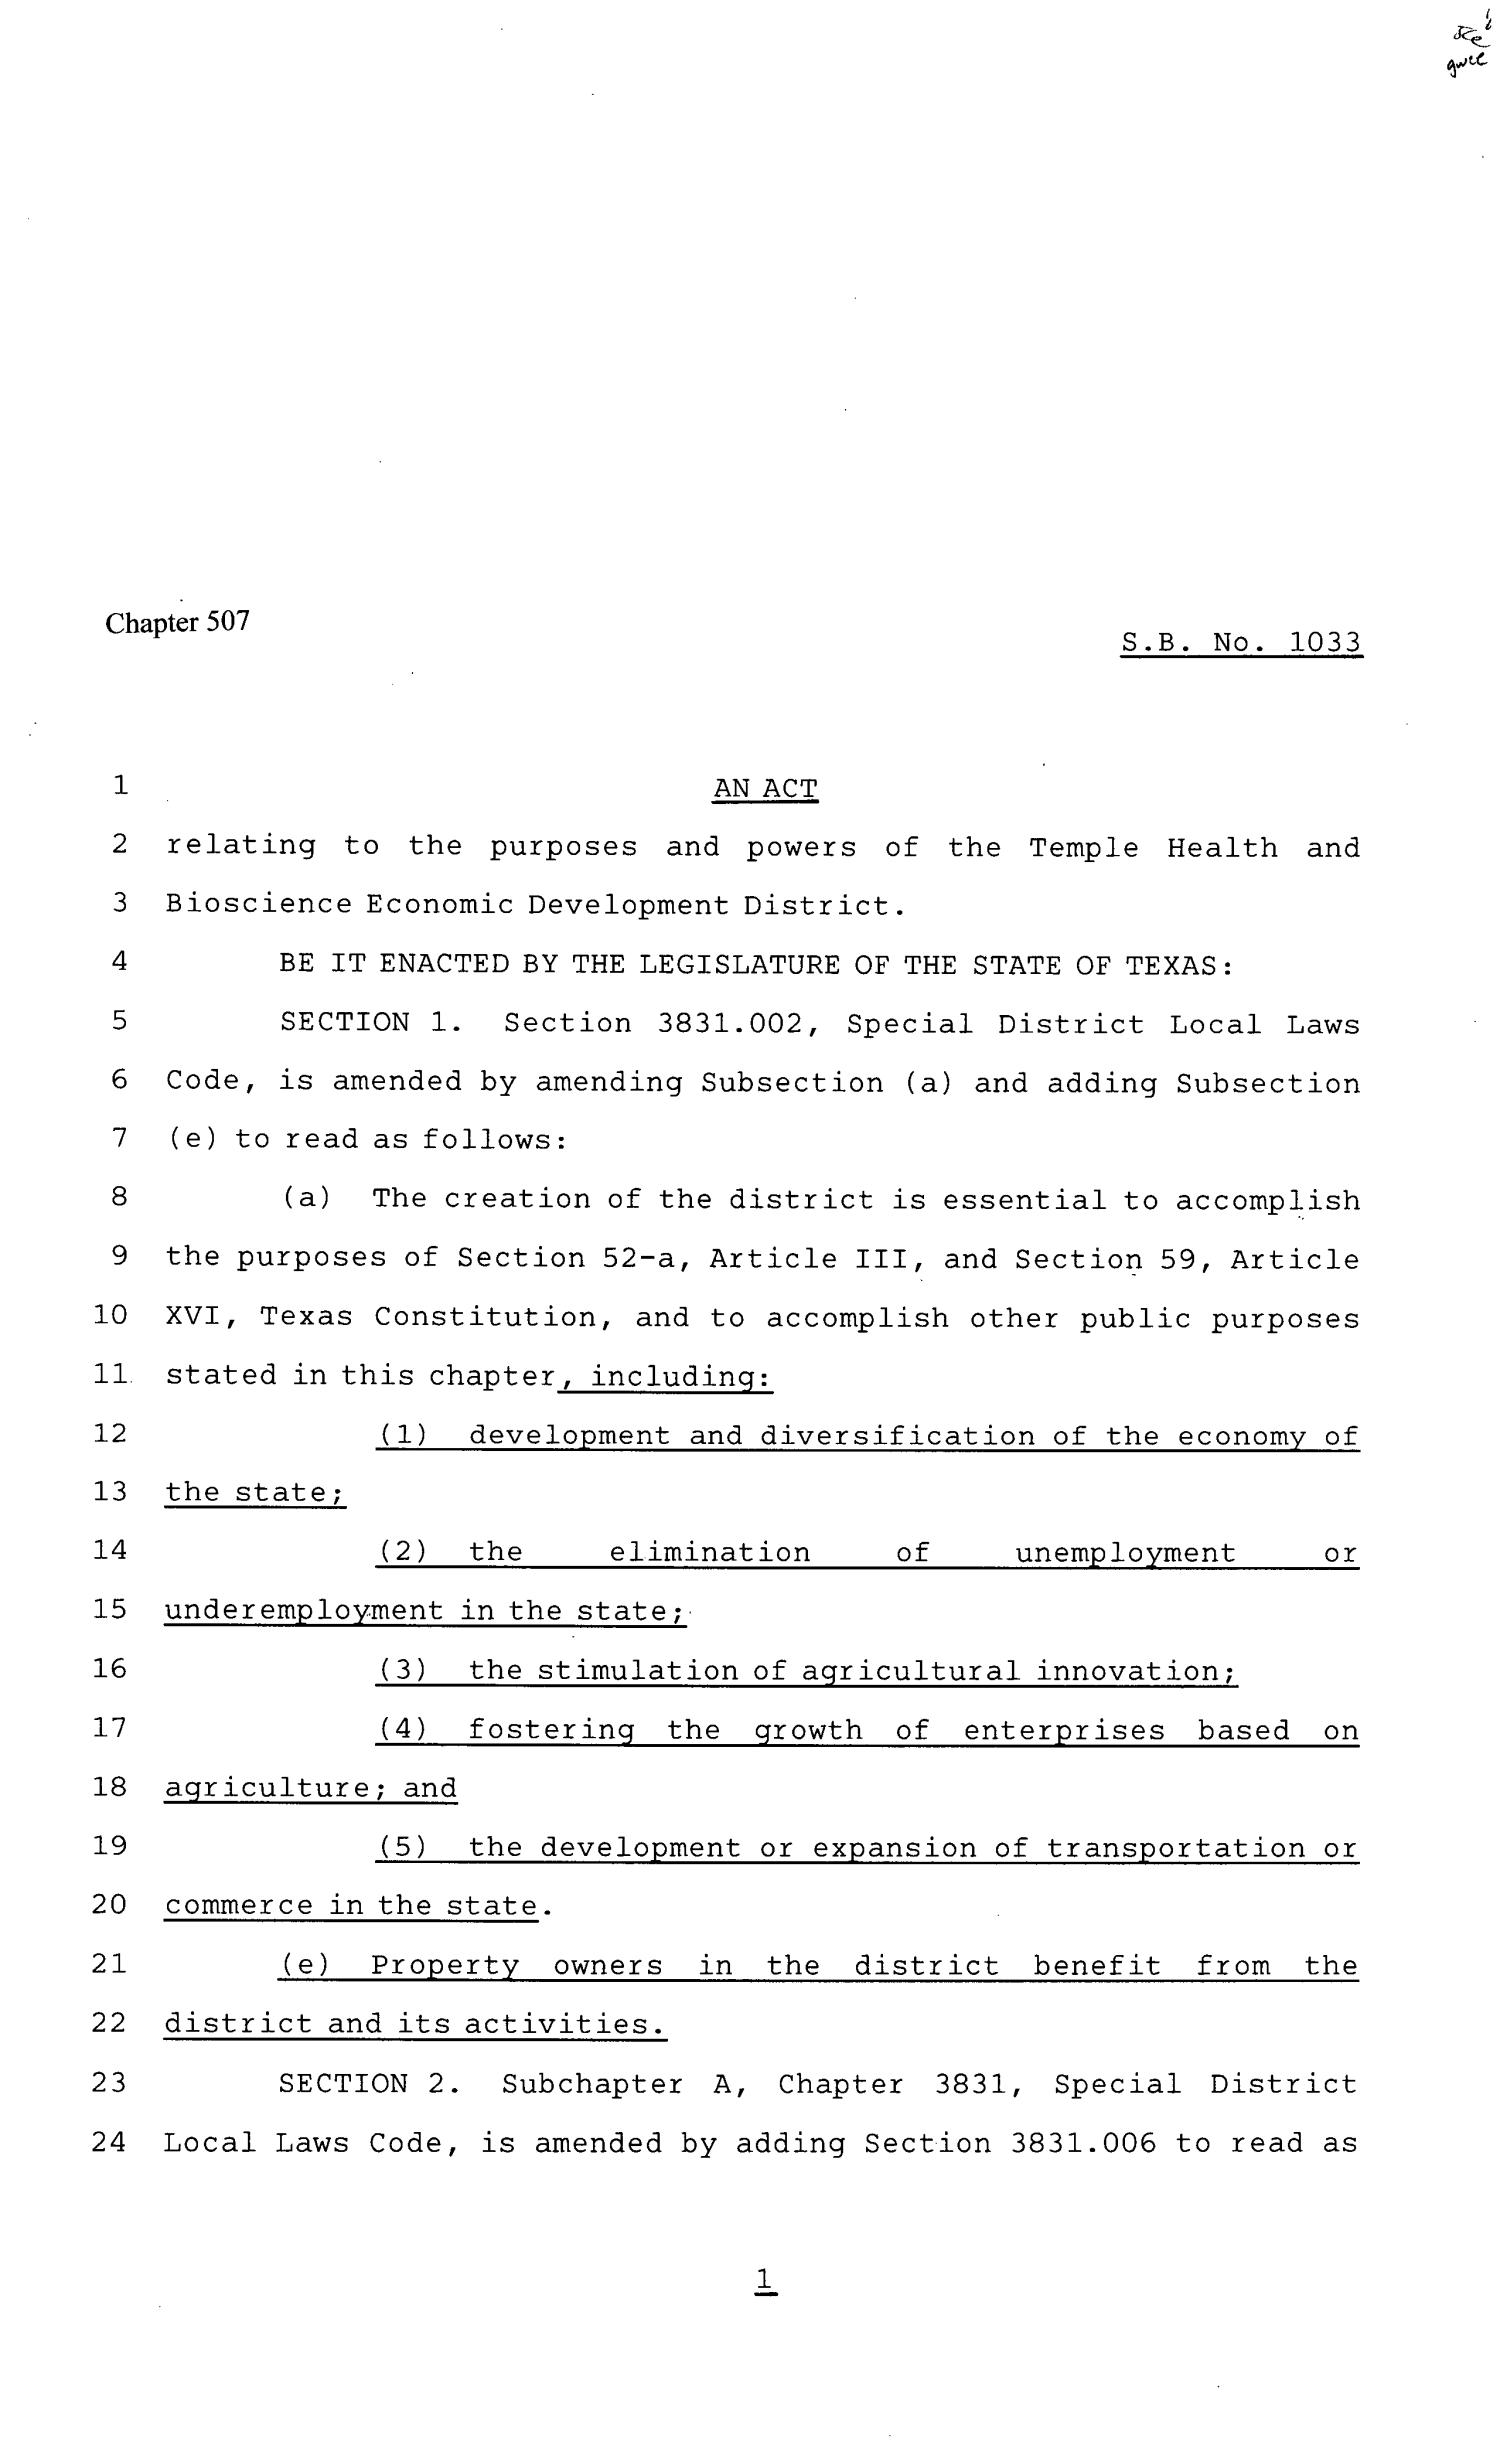 81st Texas Legislature, House Bill 1033, Chapter 507                                                                                                      [Sequence #]: 1 of 8